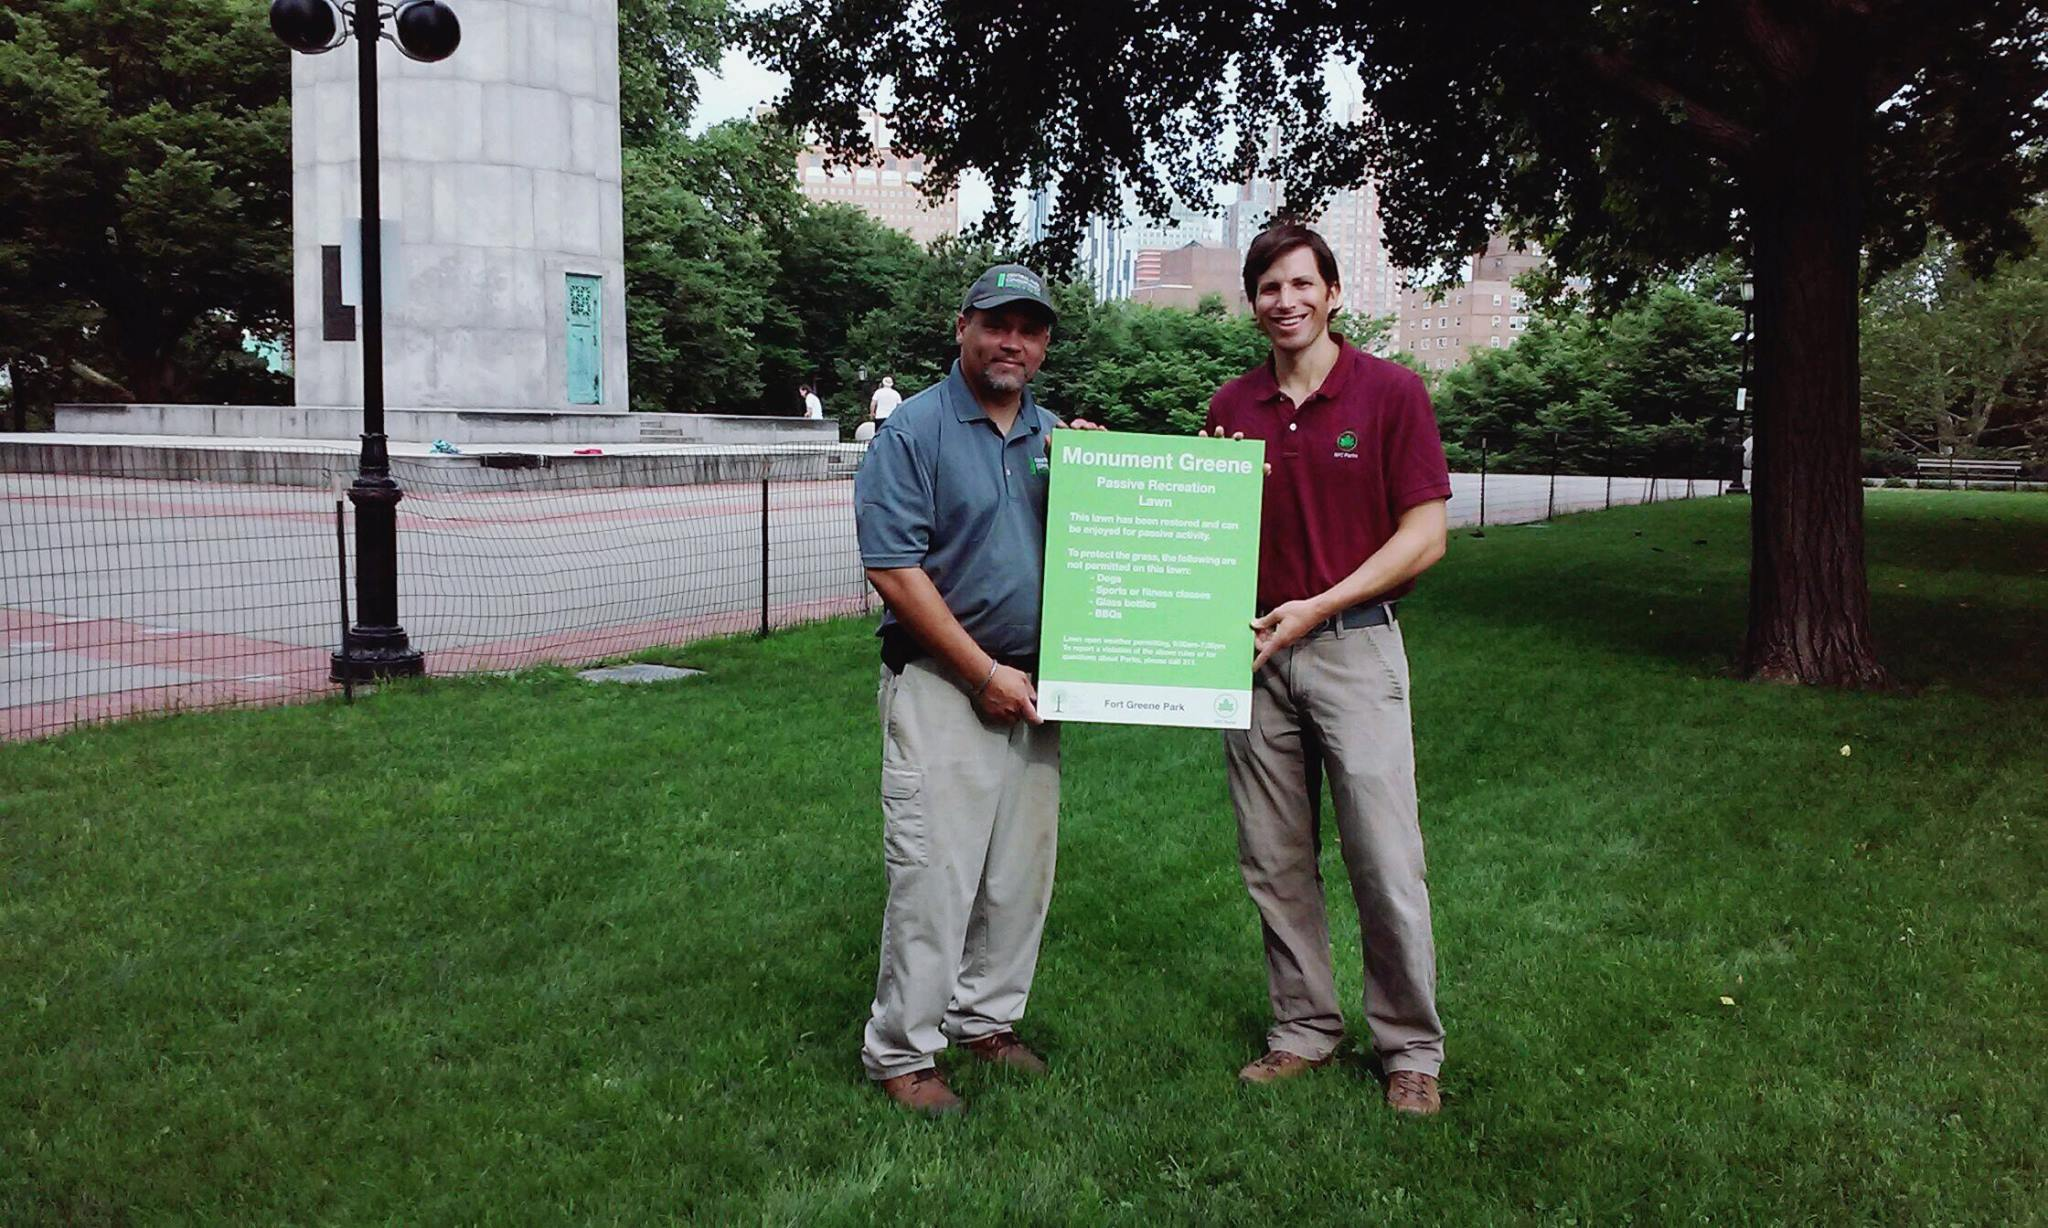 Park Director David Barker and Central Park Conservancy's Jose Figueroa opening Monument Greene Passive Recreation Lawns, one of the many projects David's led as Park Director.